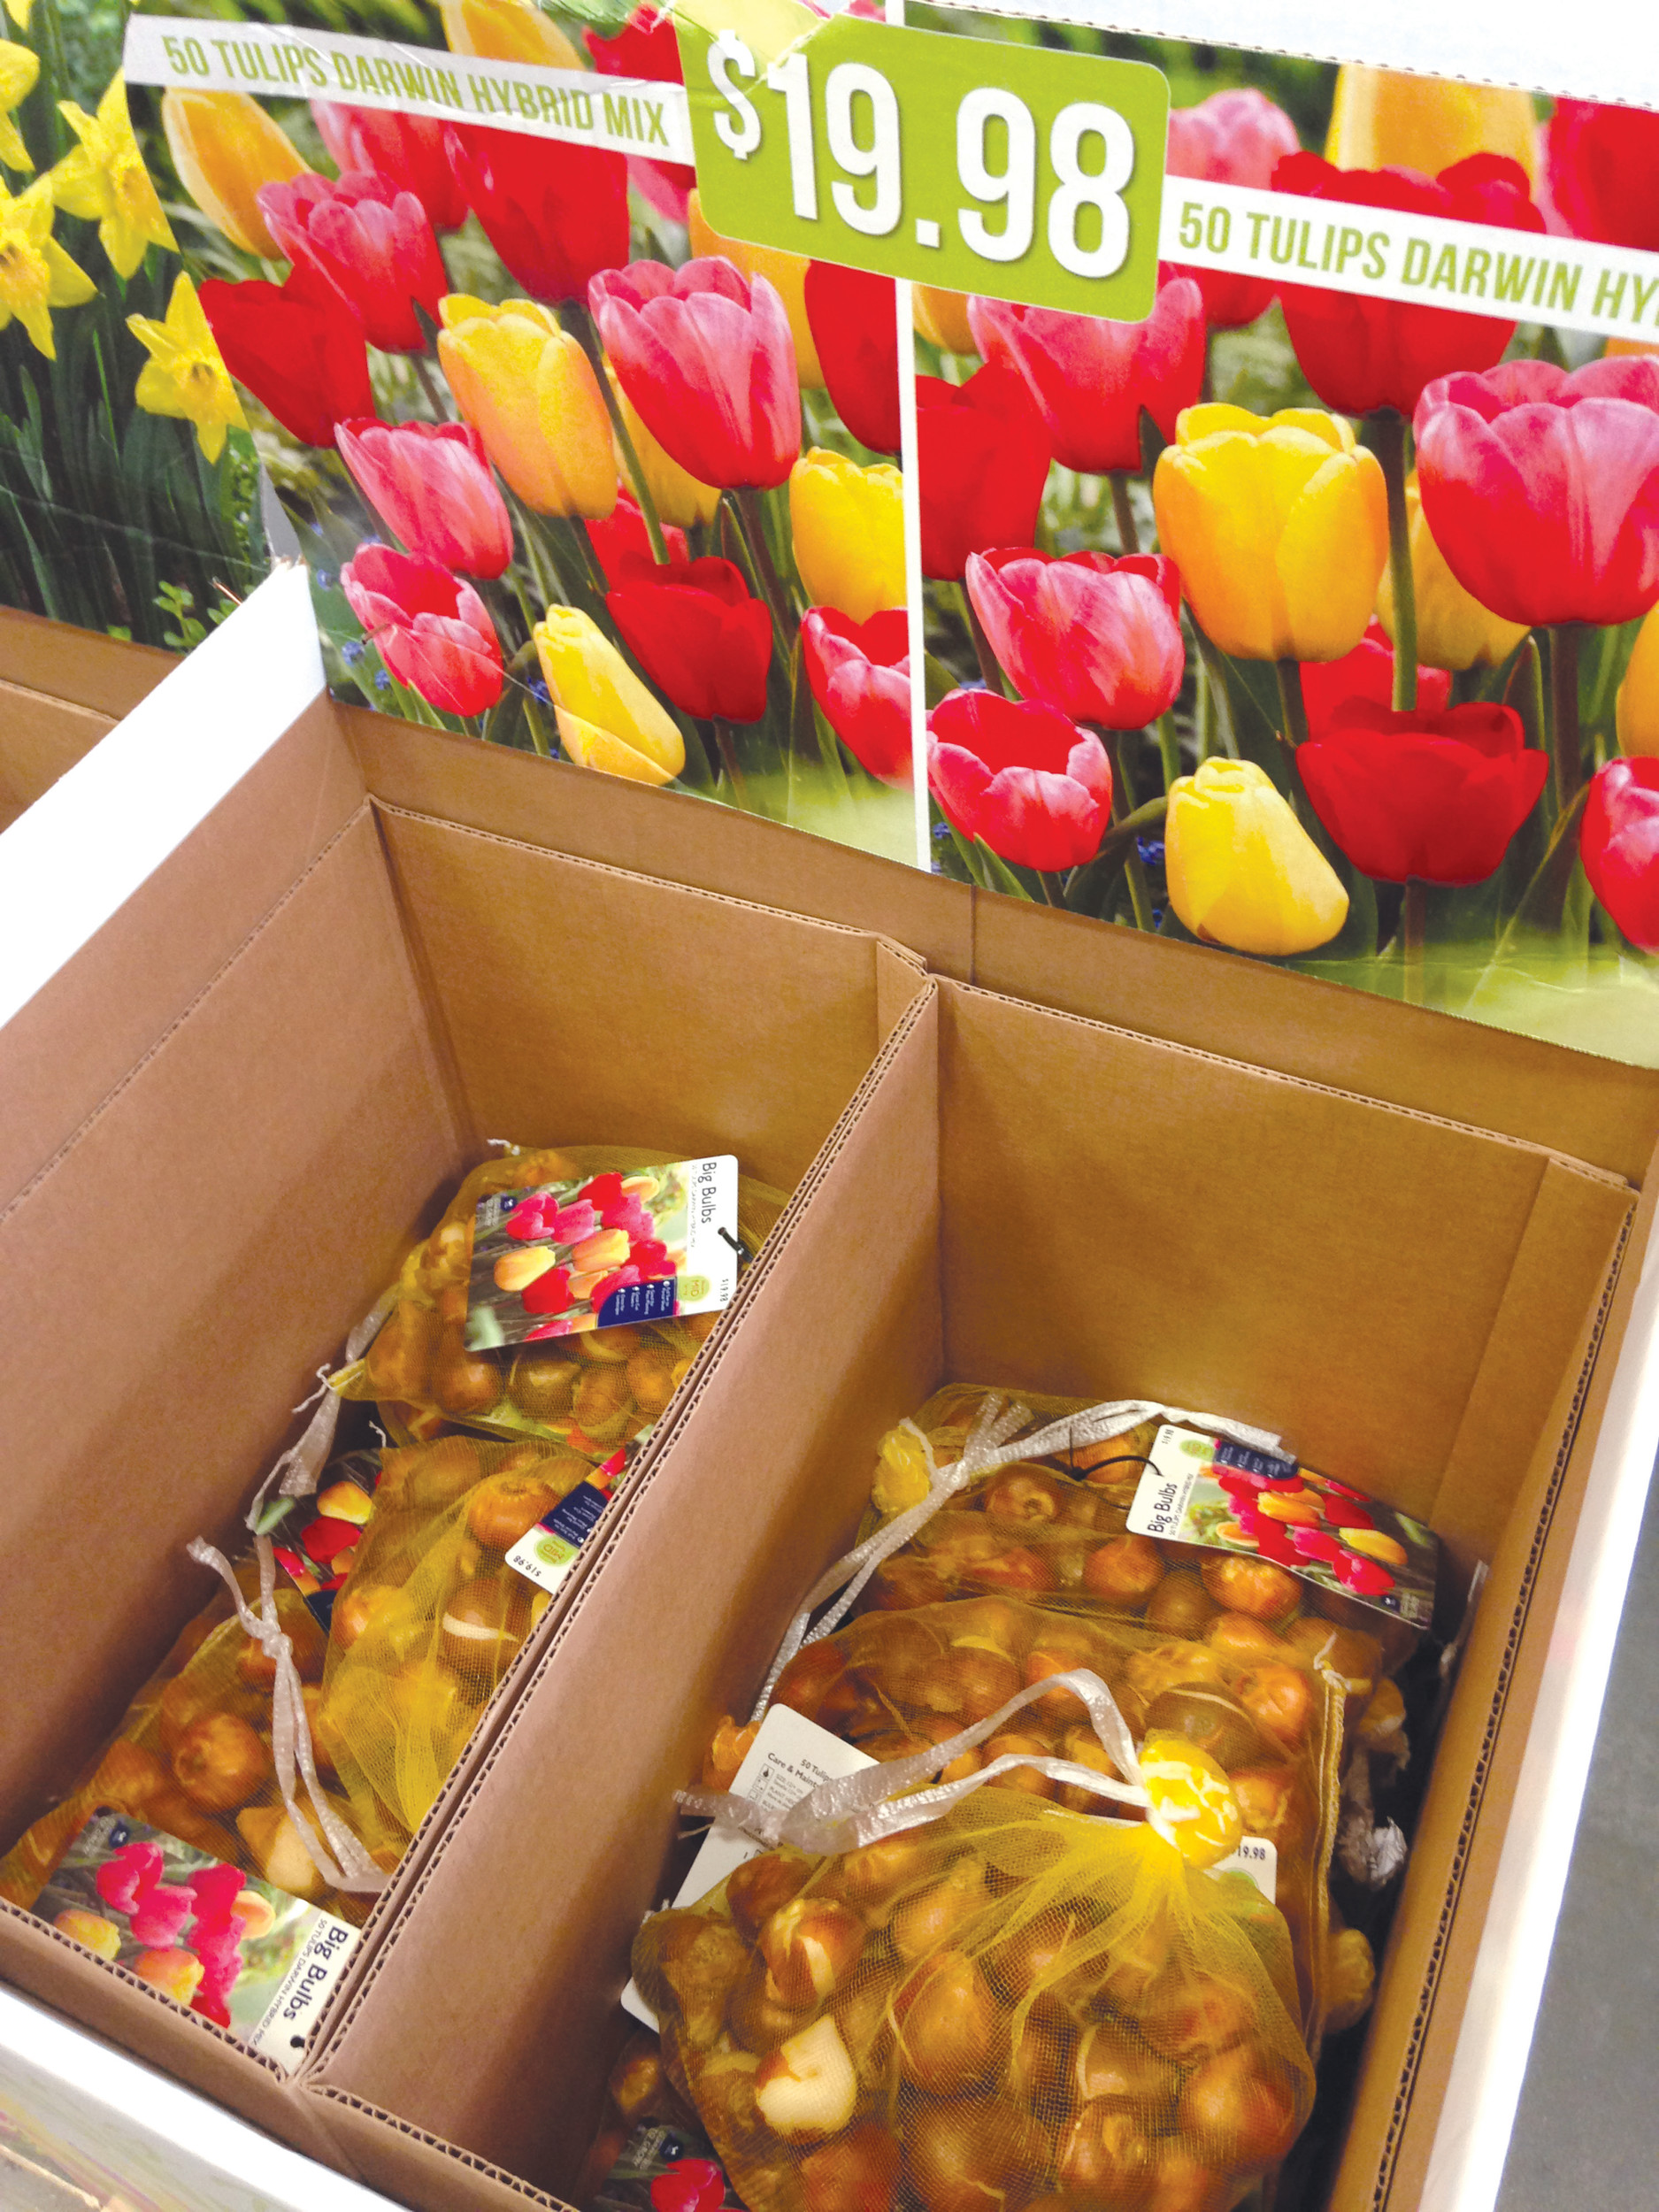 Stores are already stocking assortments of bulbs for spring color, but don't plant them too early this fall.